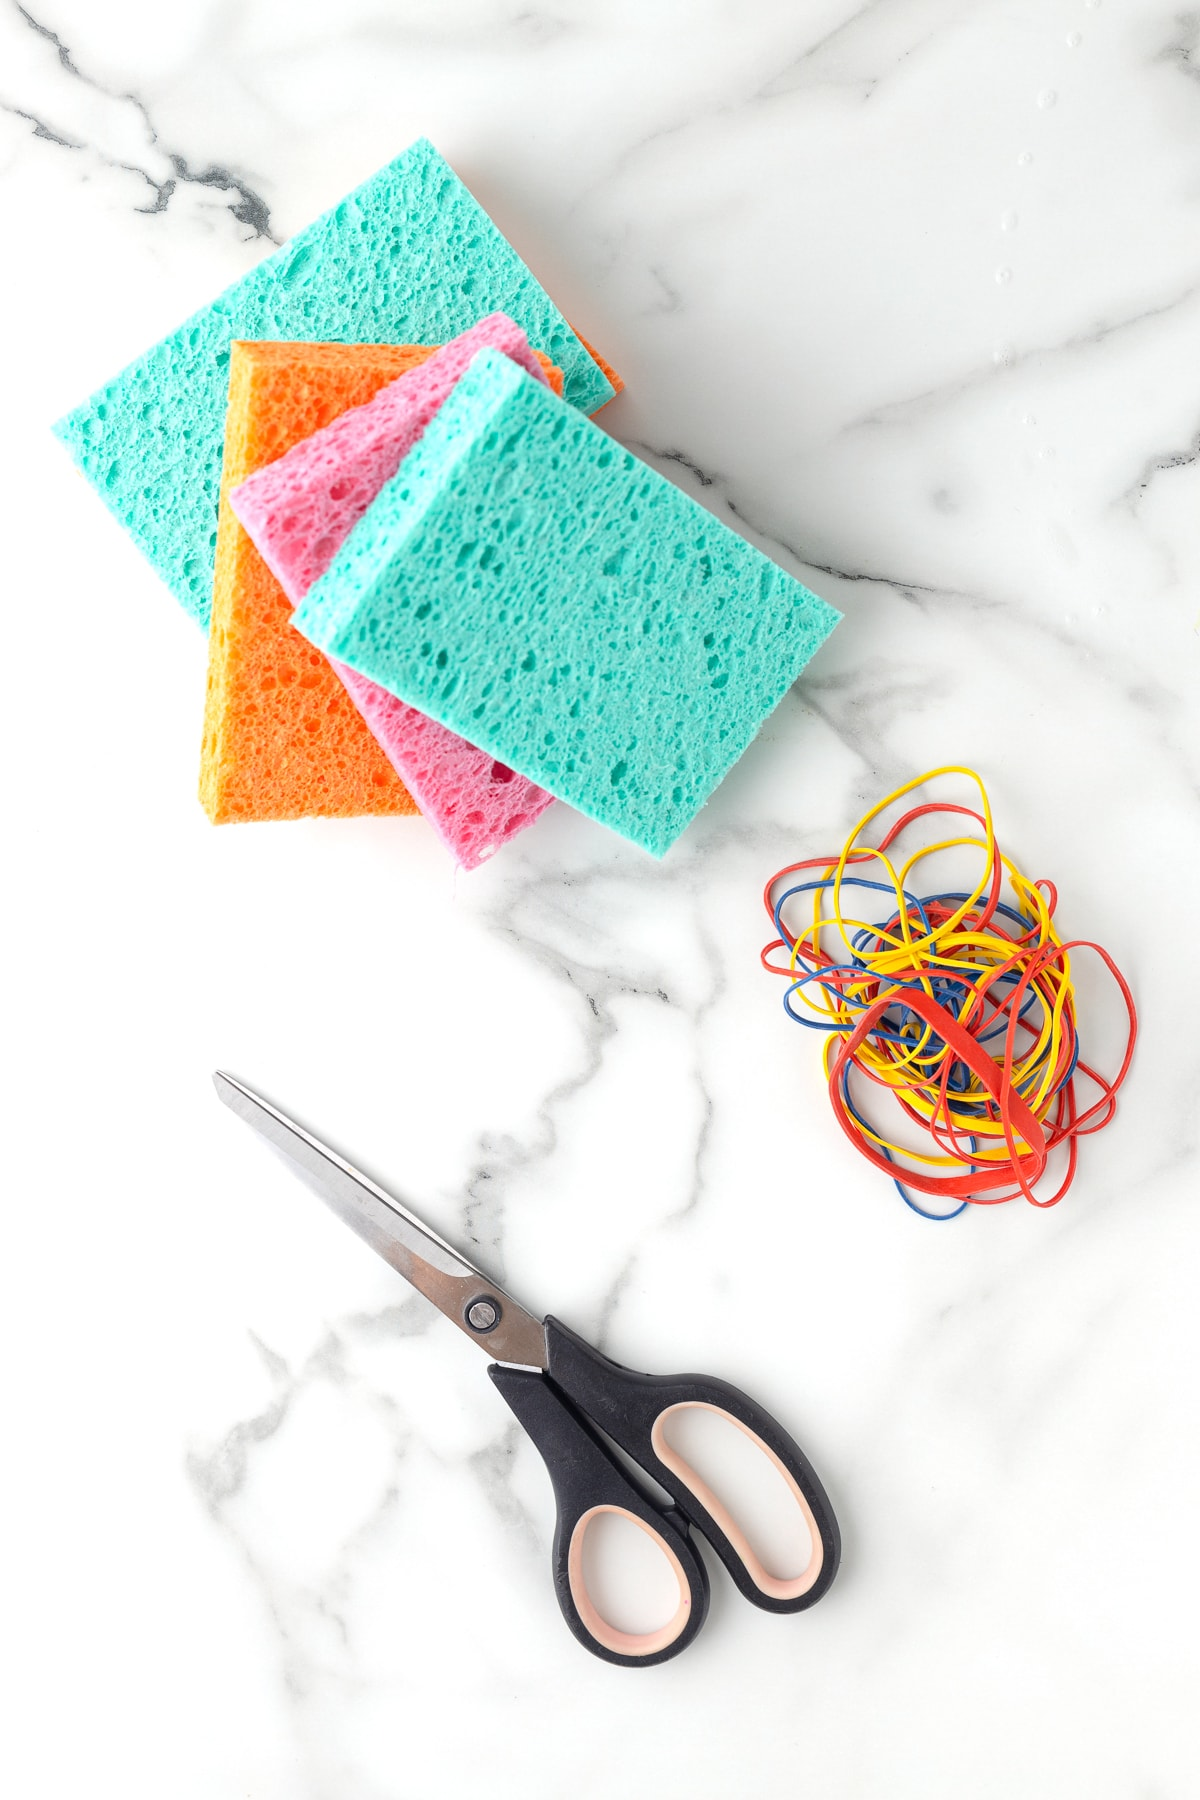 Supplies to make a sponge water bomb